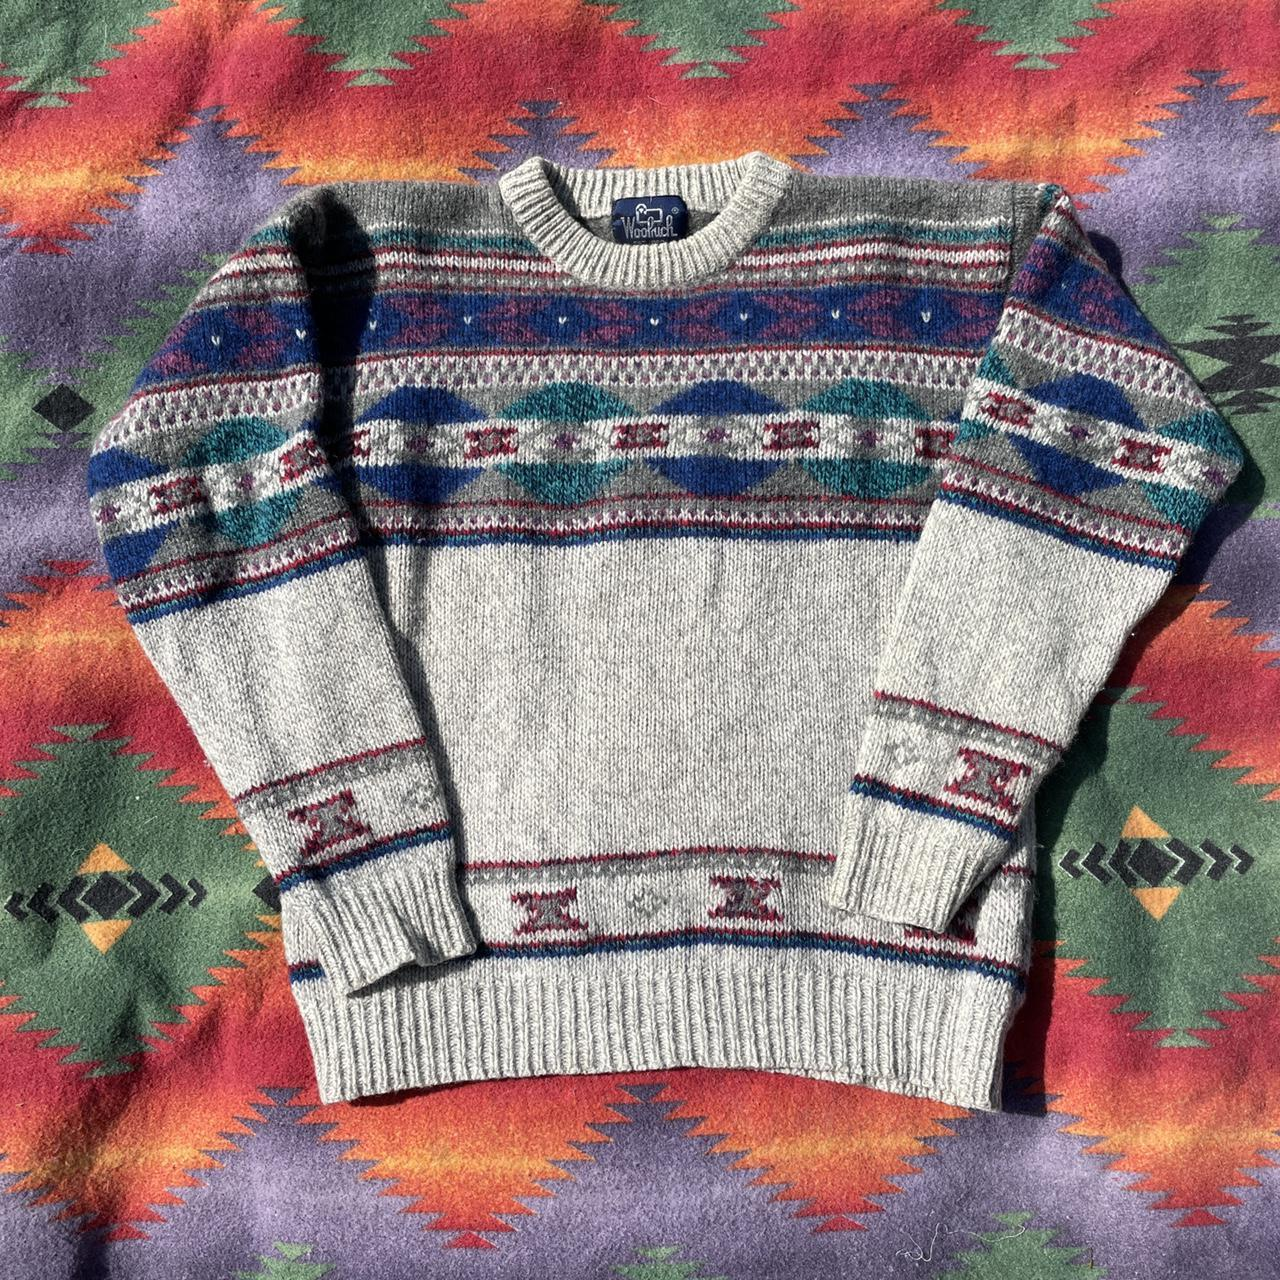 Product Image 1 - Cozy grandma cottagecore patterned woolrich